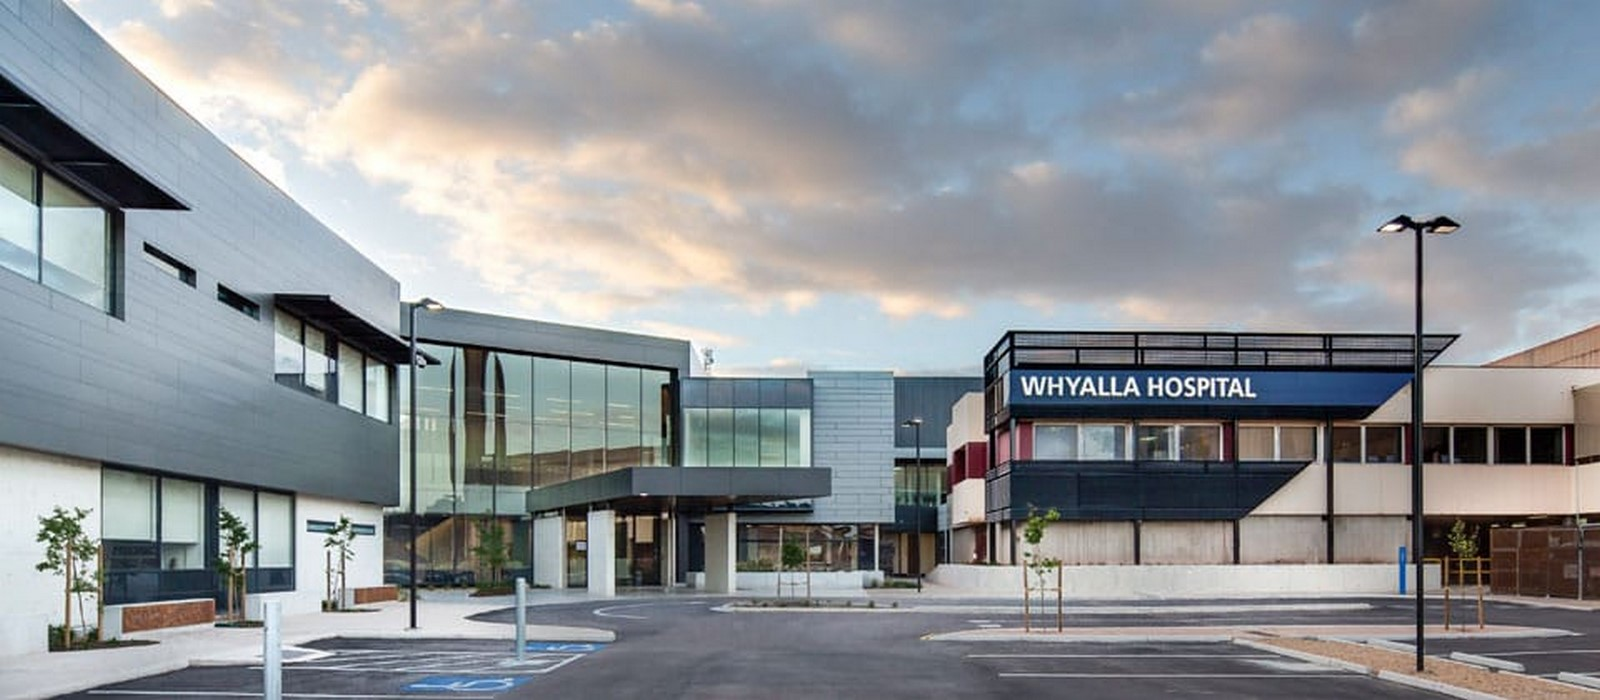 Whyalla Regional Cancer Centre, Adelaide, South Australia - Sheet1